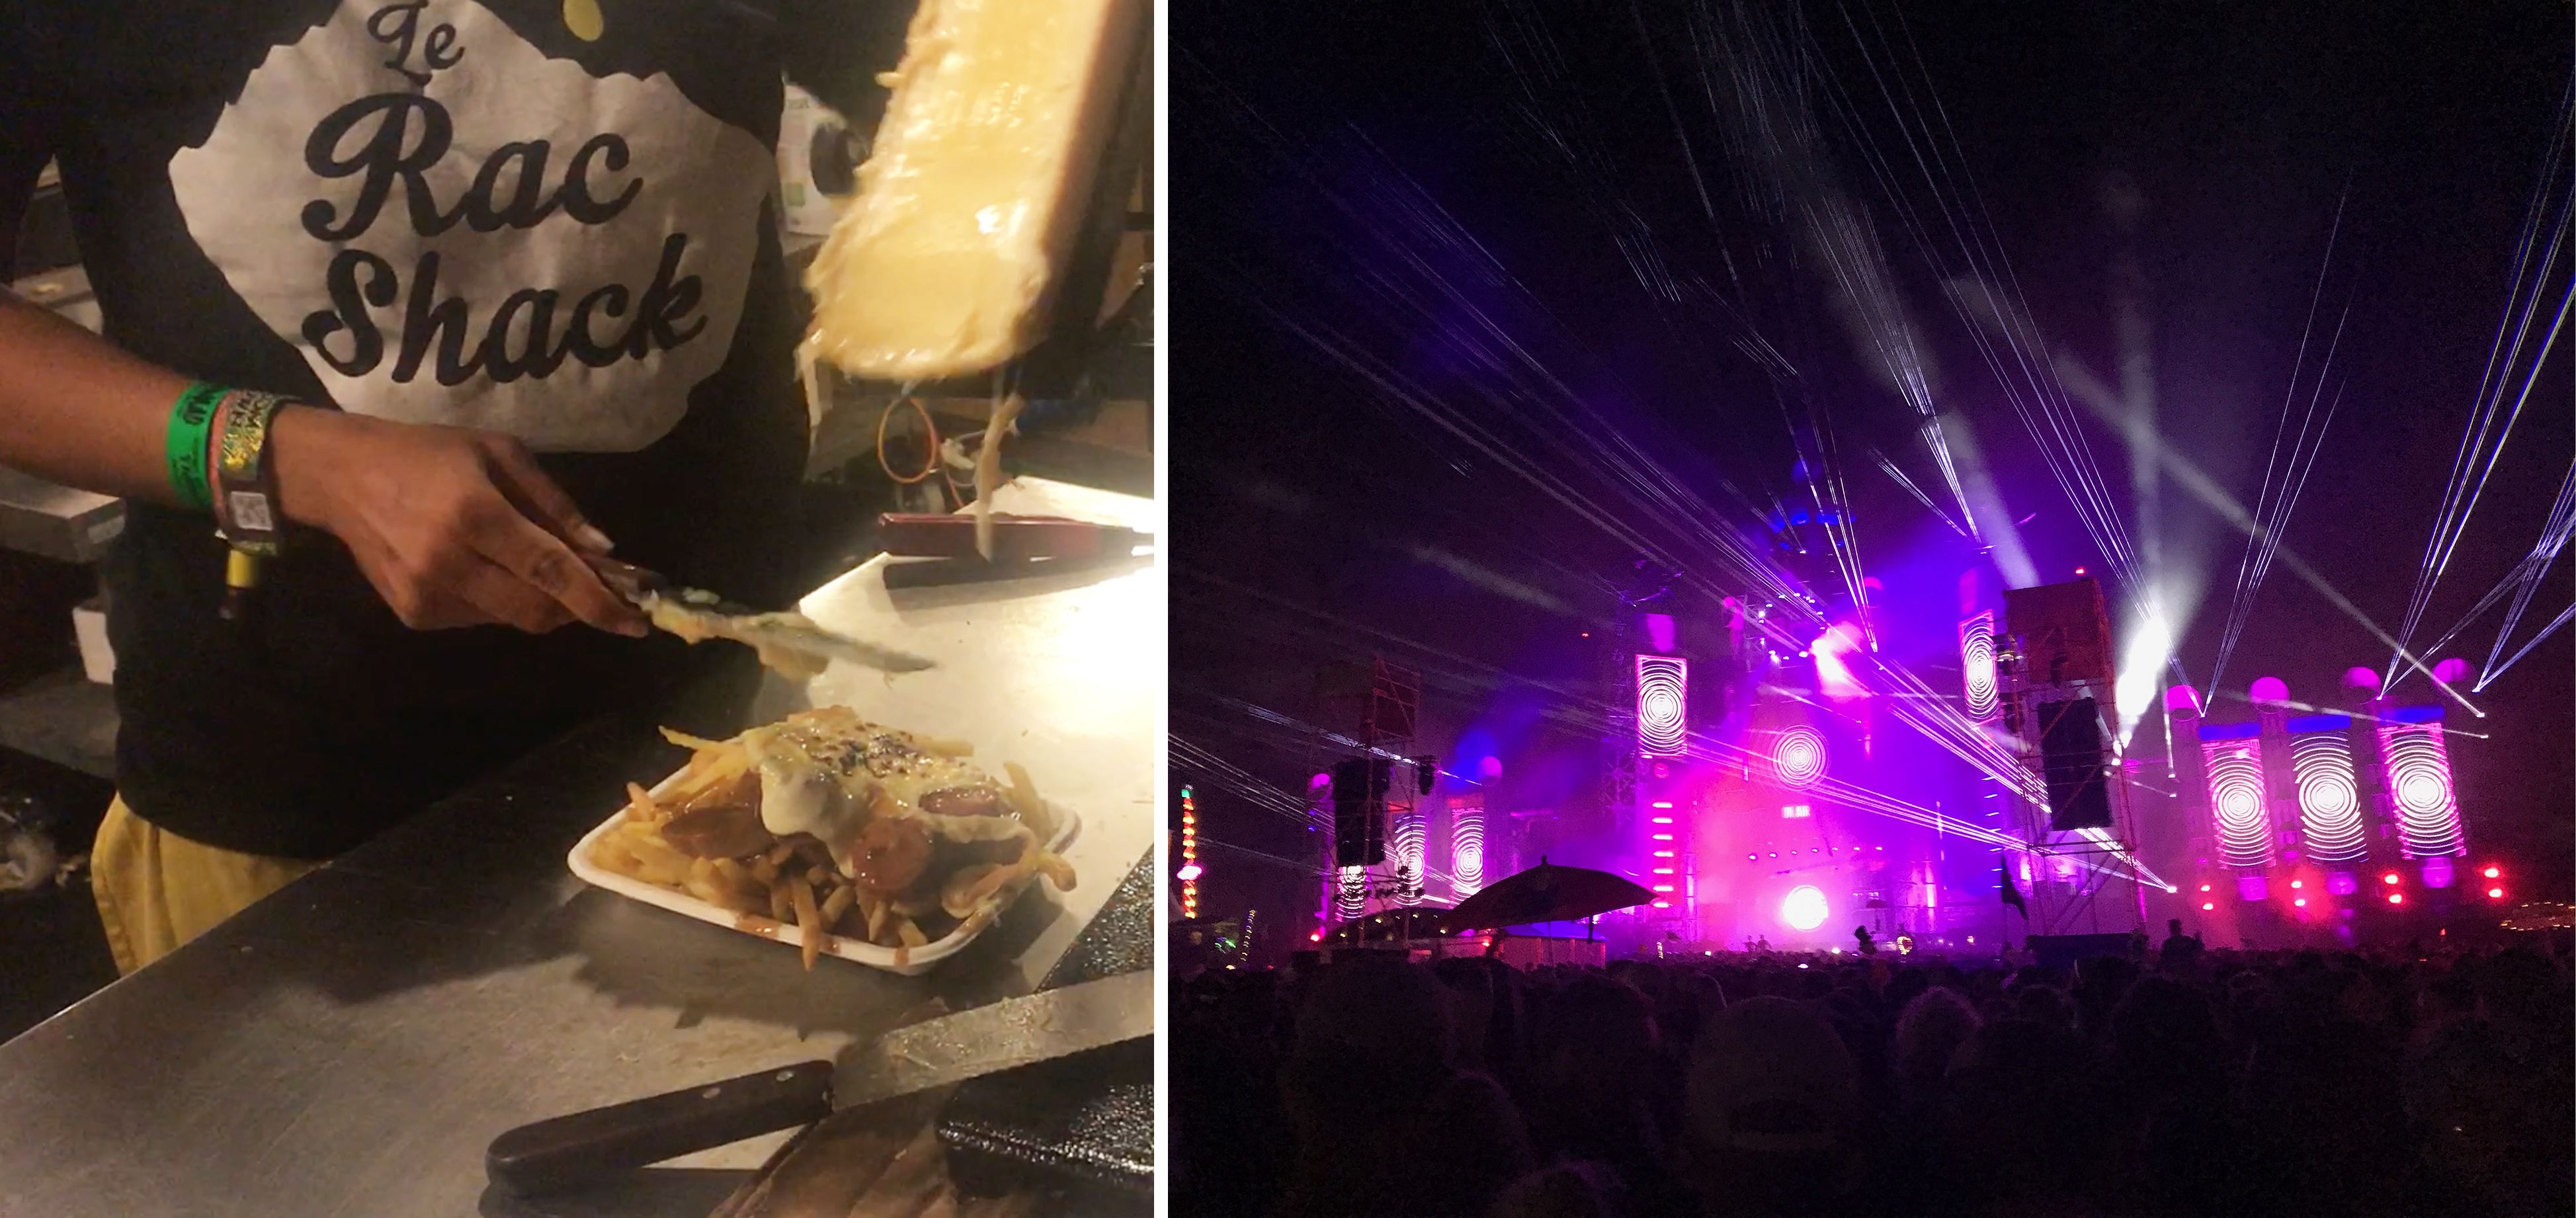 Amazing raclette on chips and sausage from the Rac Shack, and the incredible Bang Hai Towers UK festival food